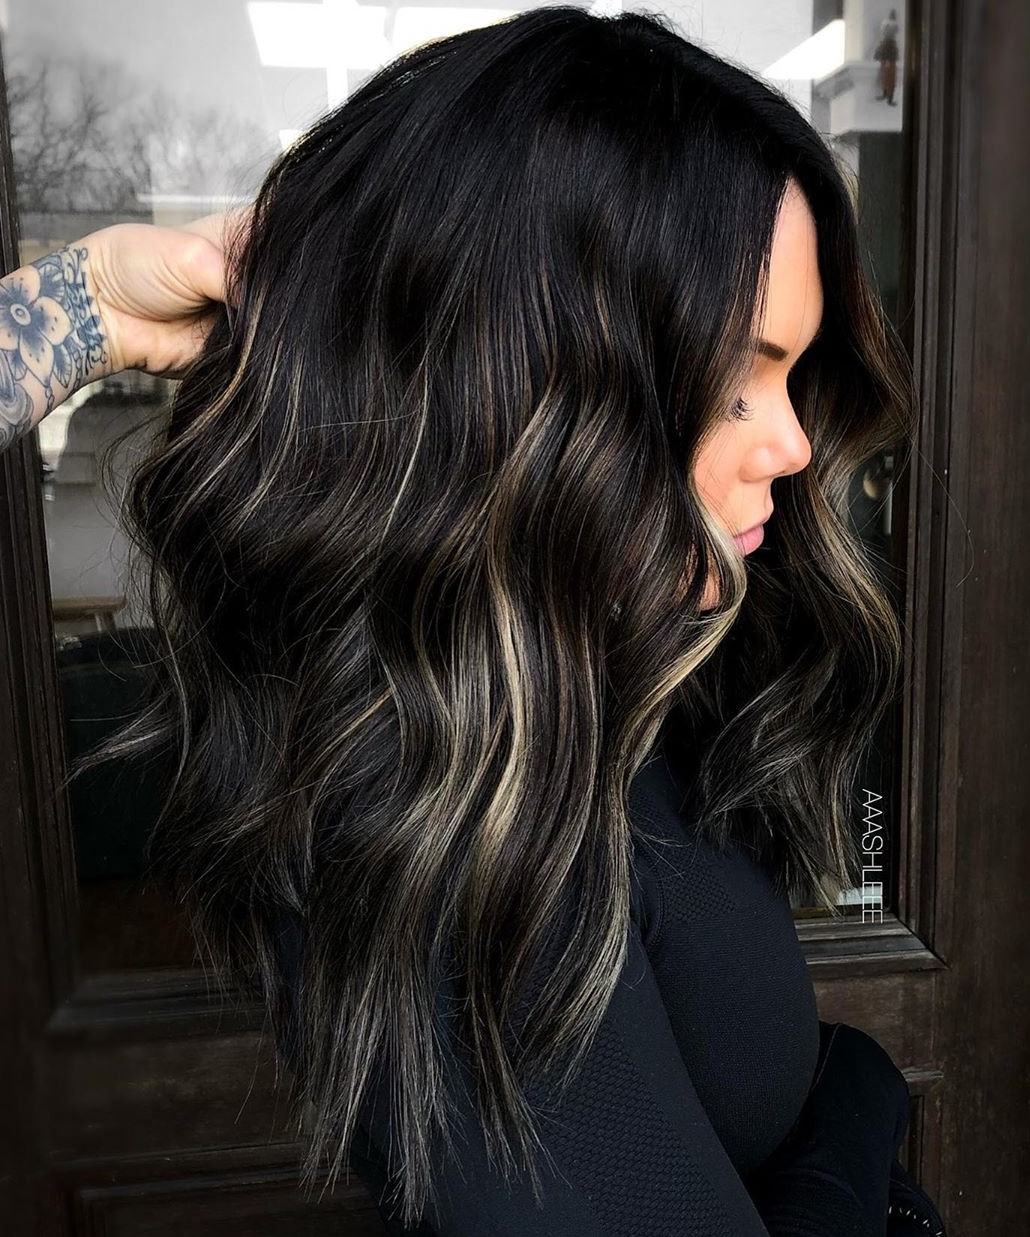 Subtle Peekaboo Highlights for Black Hair